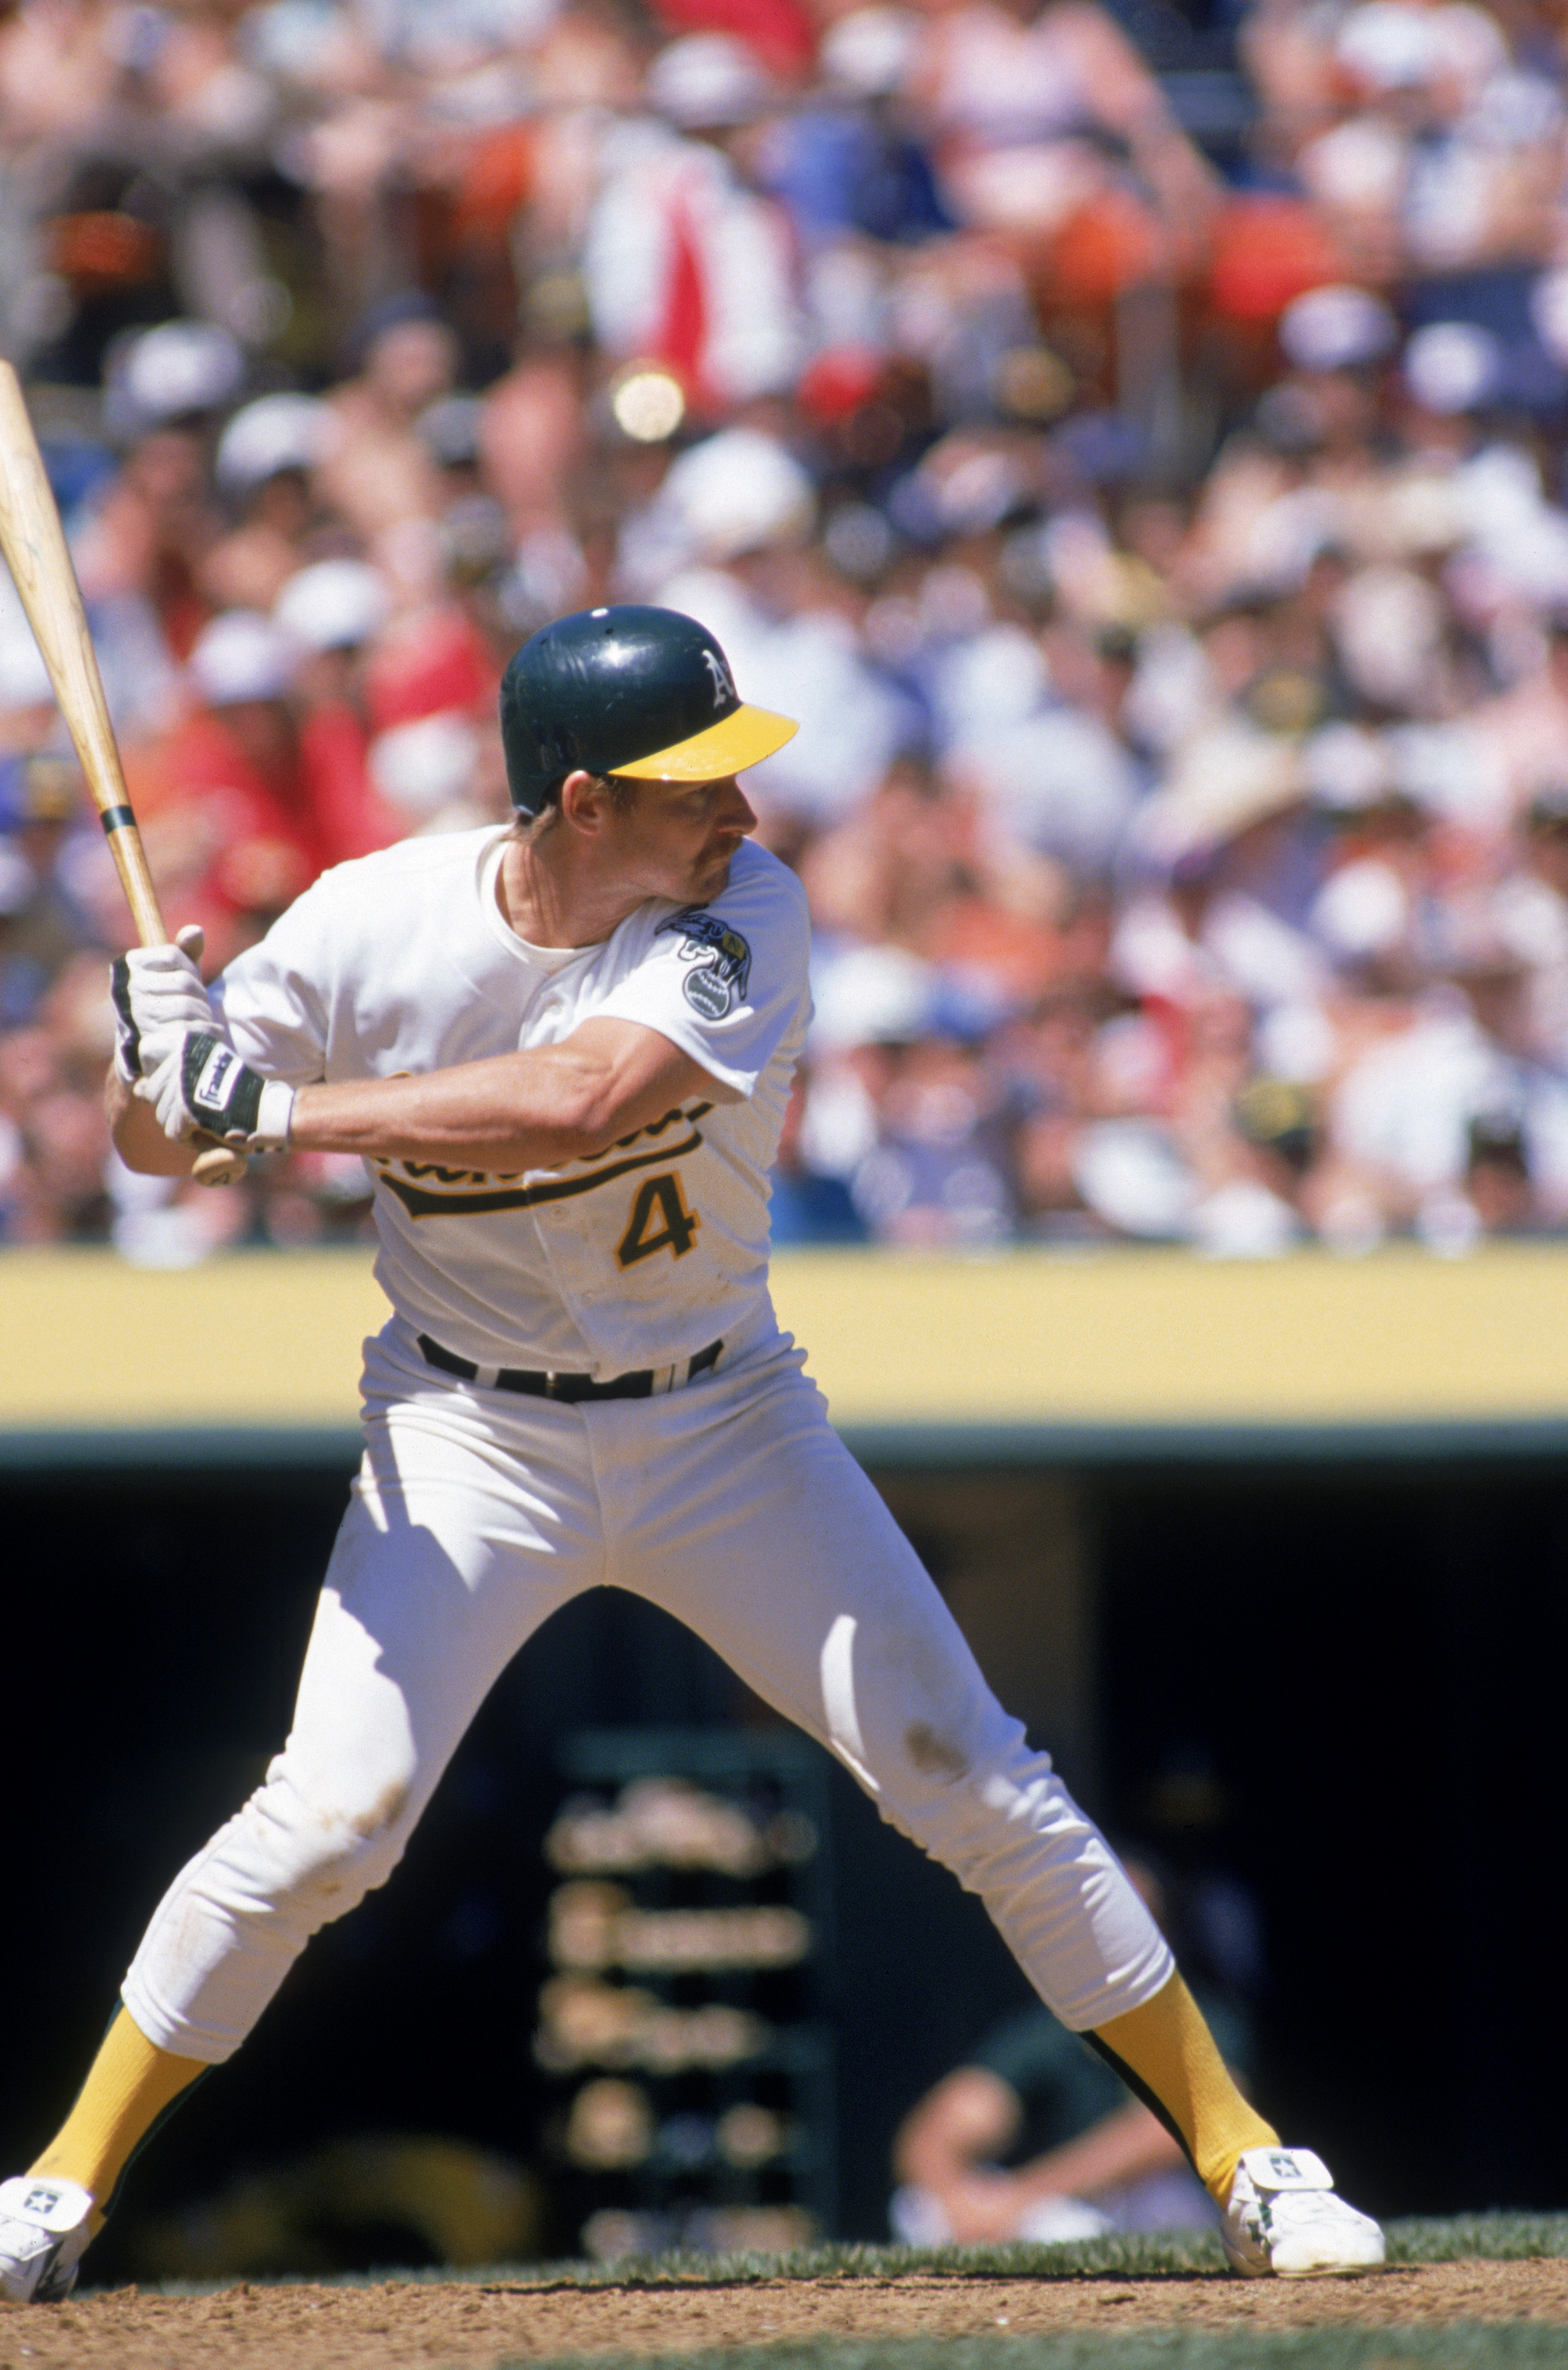 OAKLAND, CA - 1989:  Carney Lansford #4 of the Oakland Athletics stands ready at the plate during a 1989 season game at Oakland-Alameda County Coliseum in Oakland, California.  (Photo by Otto Greule Jr/Getty Images)